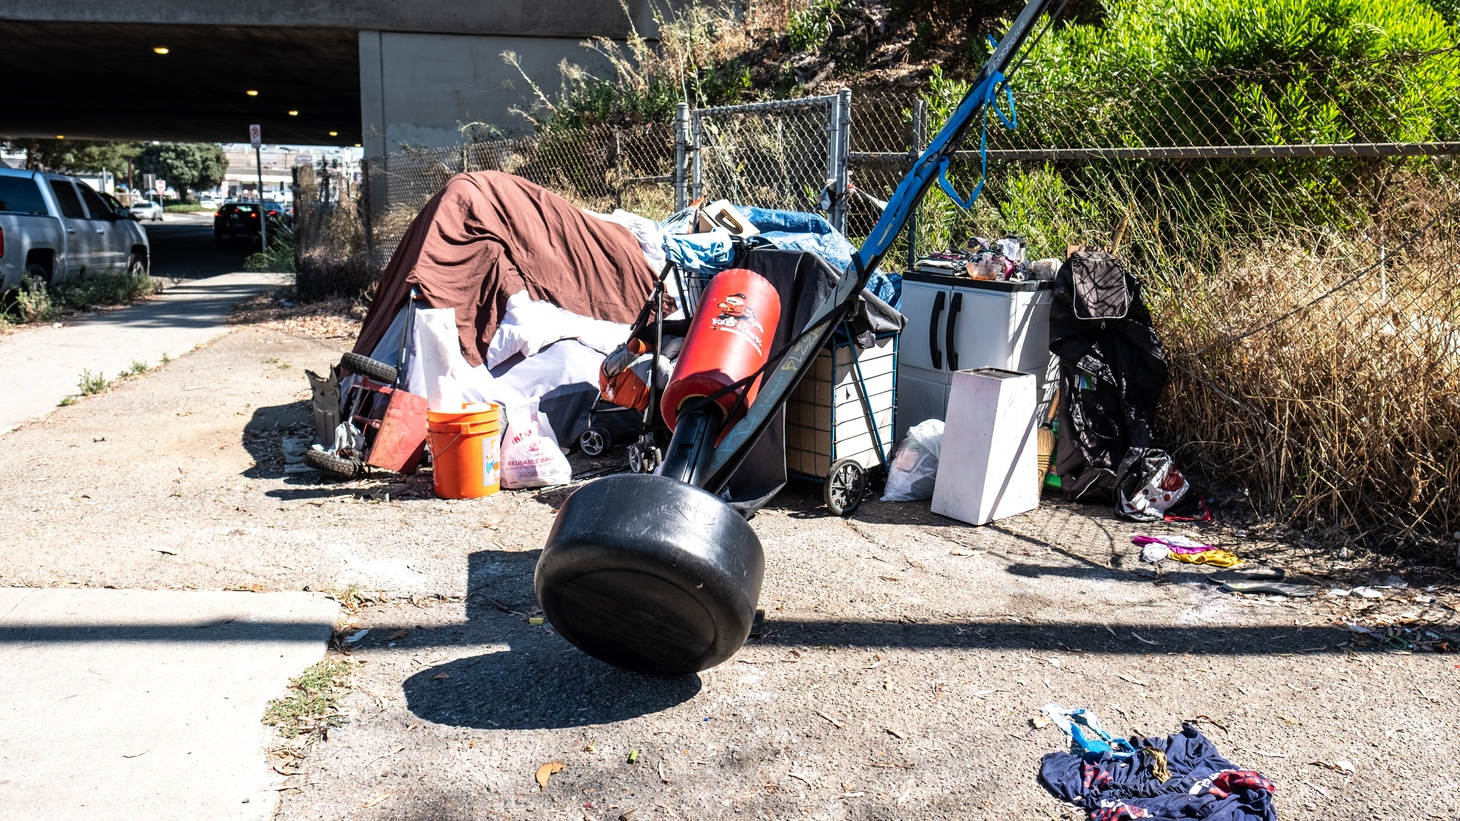 A homeless encampment in Santa Monica, August 2019.